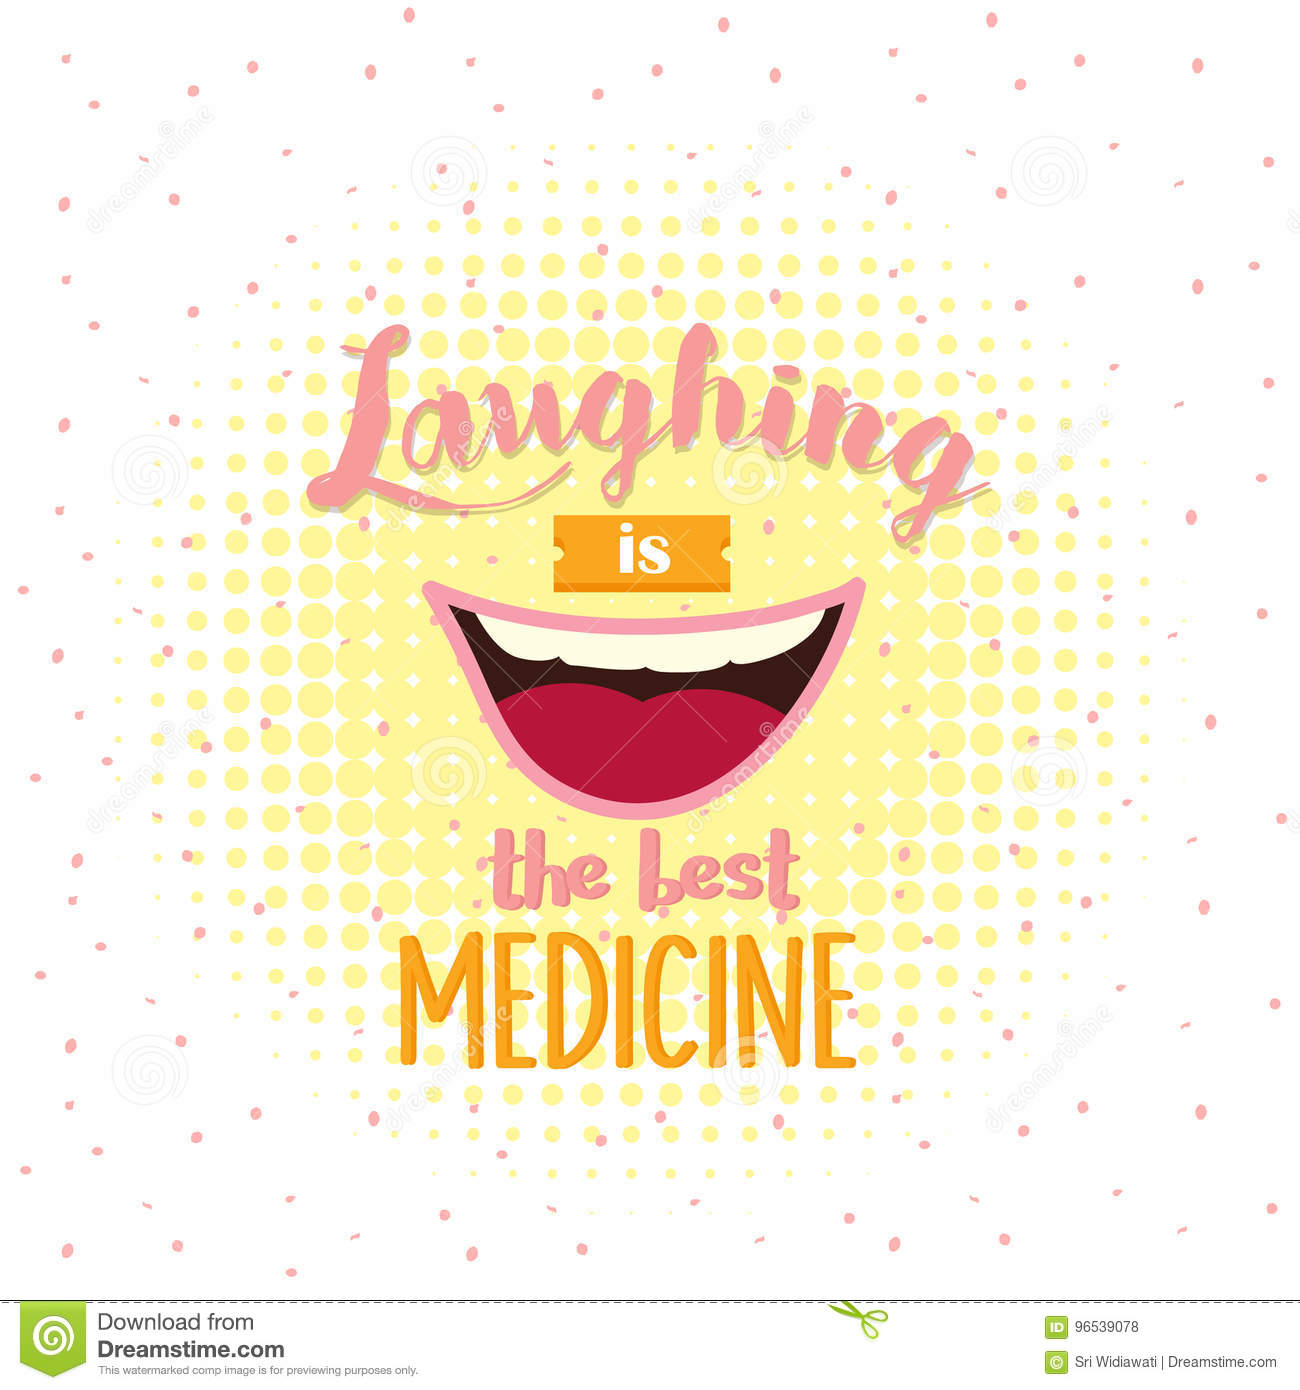 Laughing Is The Best Medicine Motivation Quotes Poster Text About